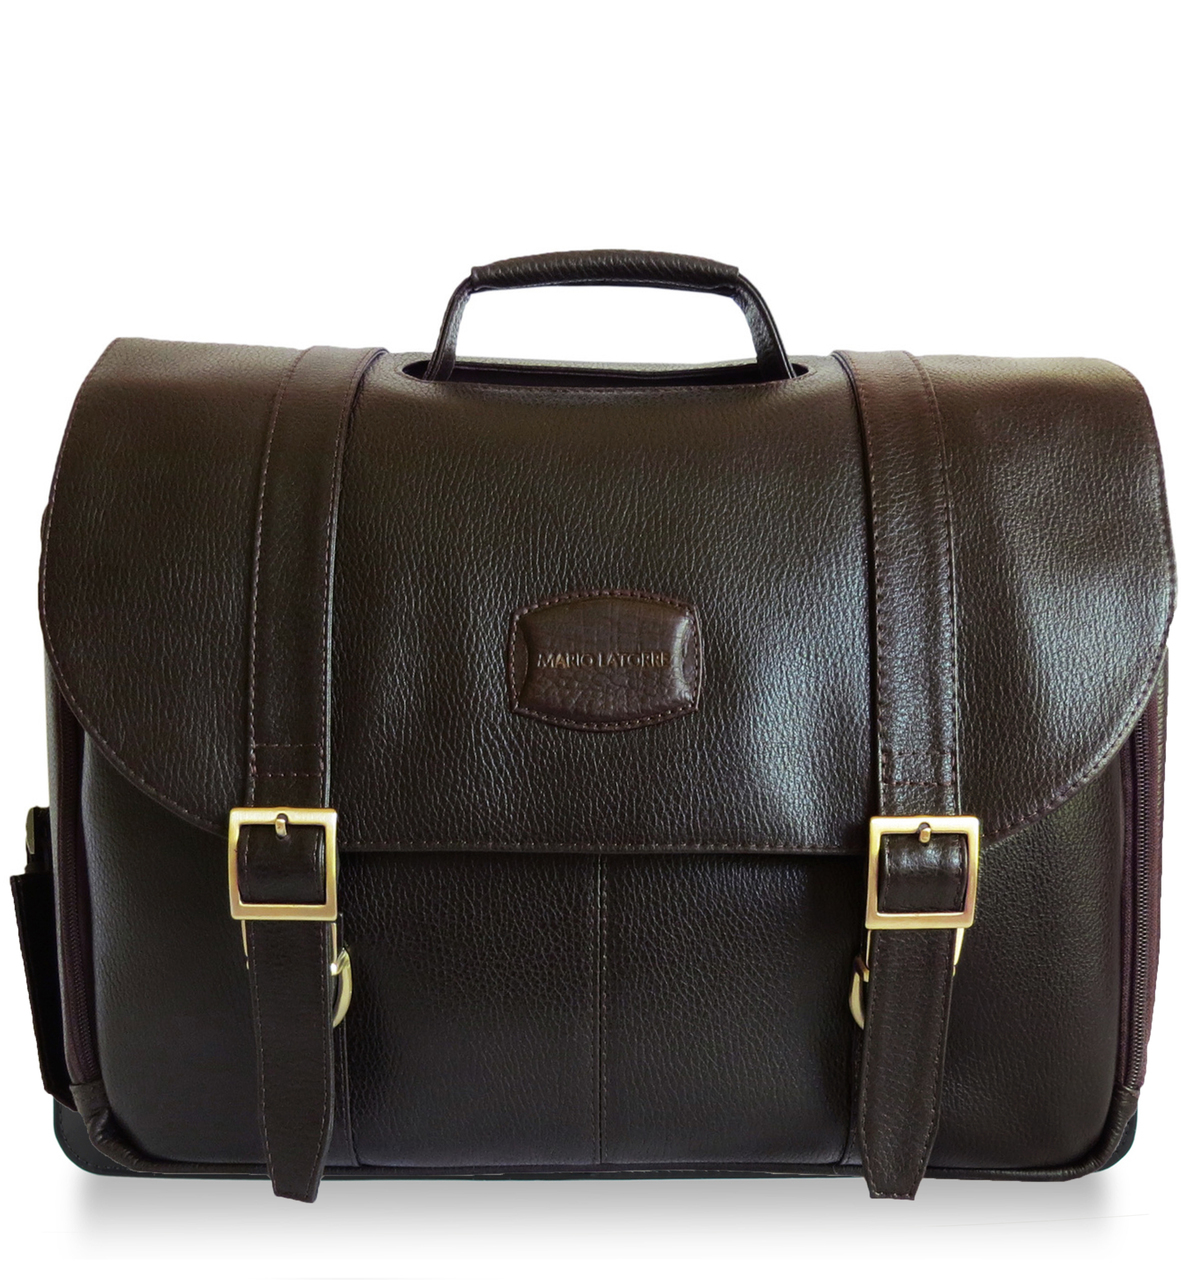 Satchel Travel Bag Ekta Bags